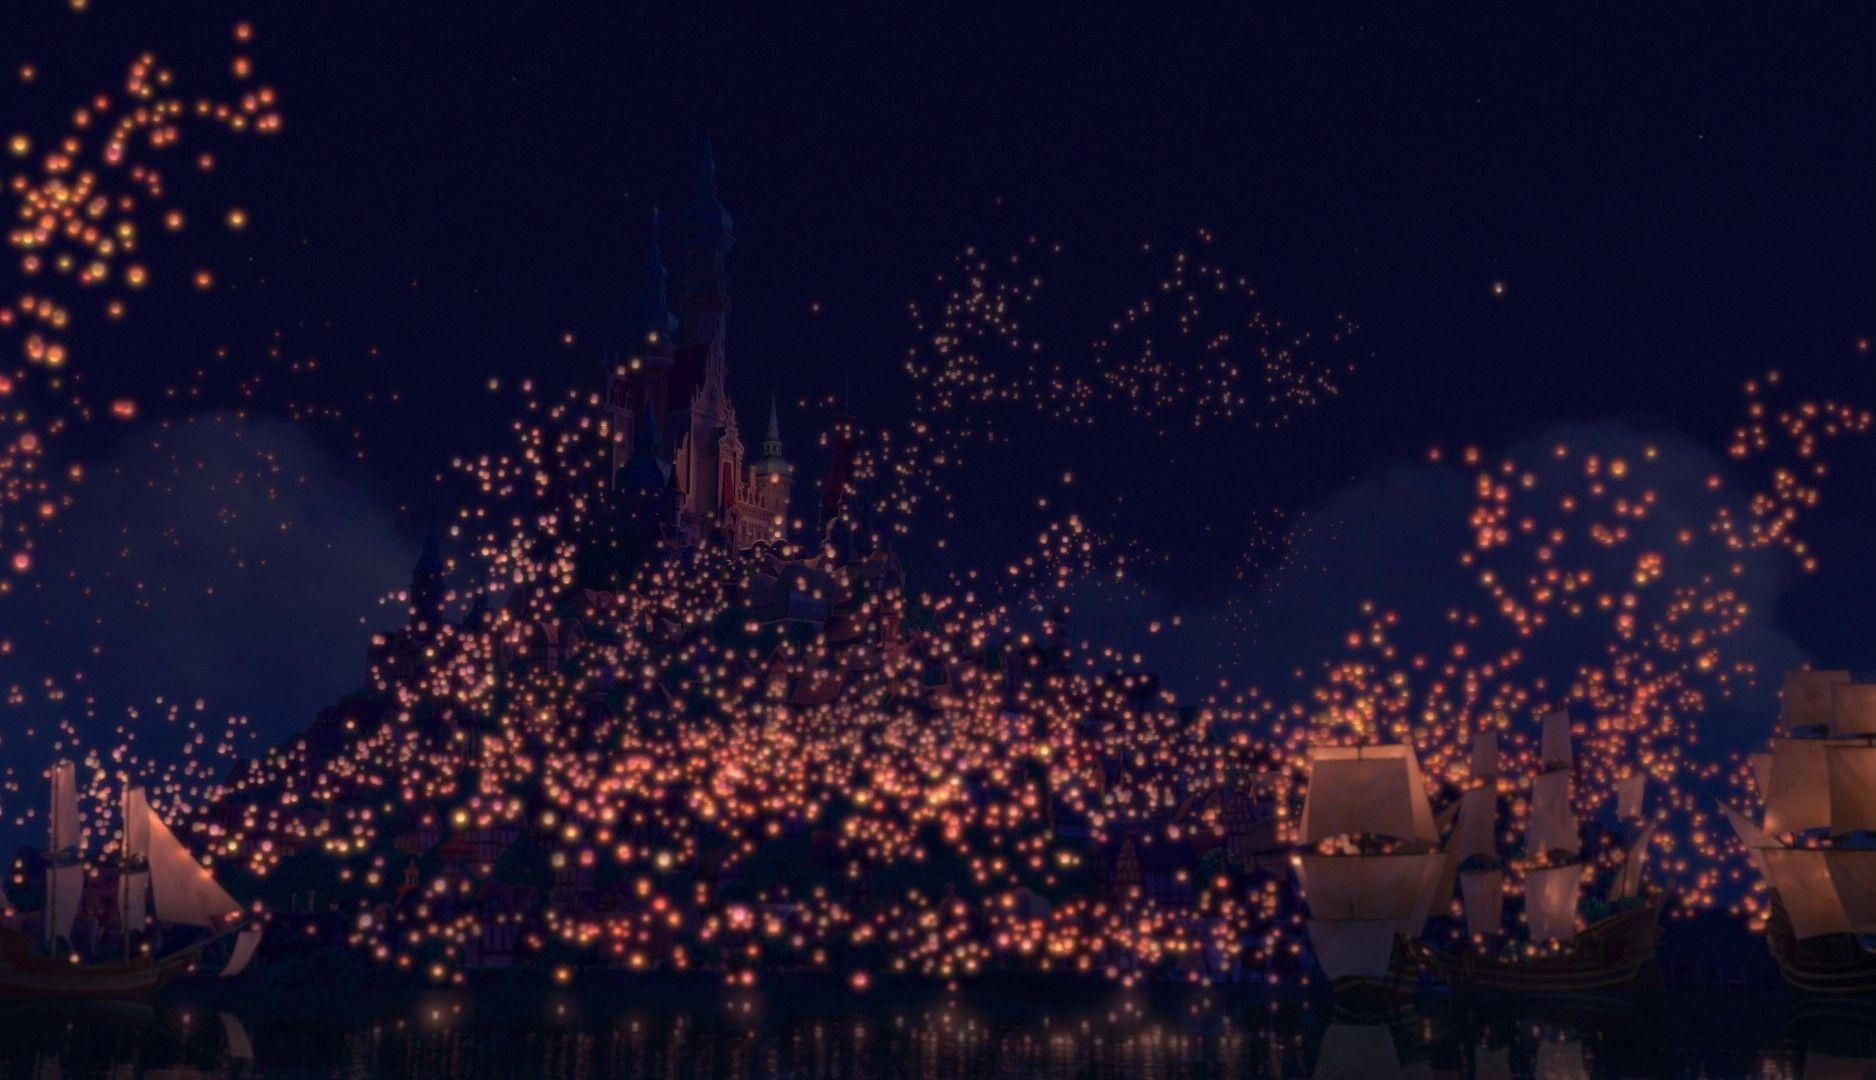 Tangled Lantern Wallpaper Images Pictures